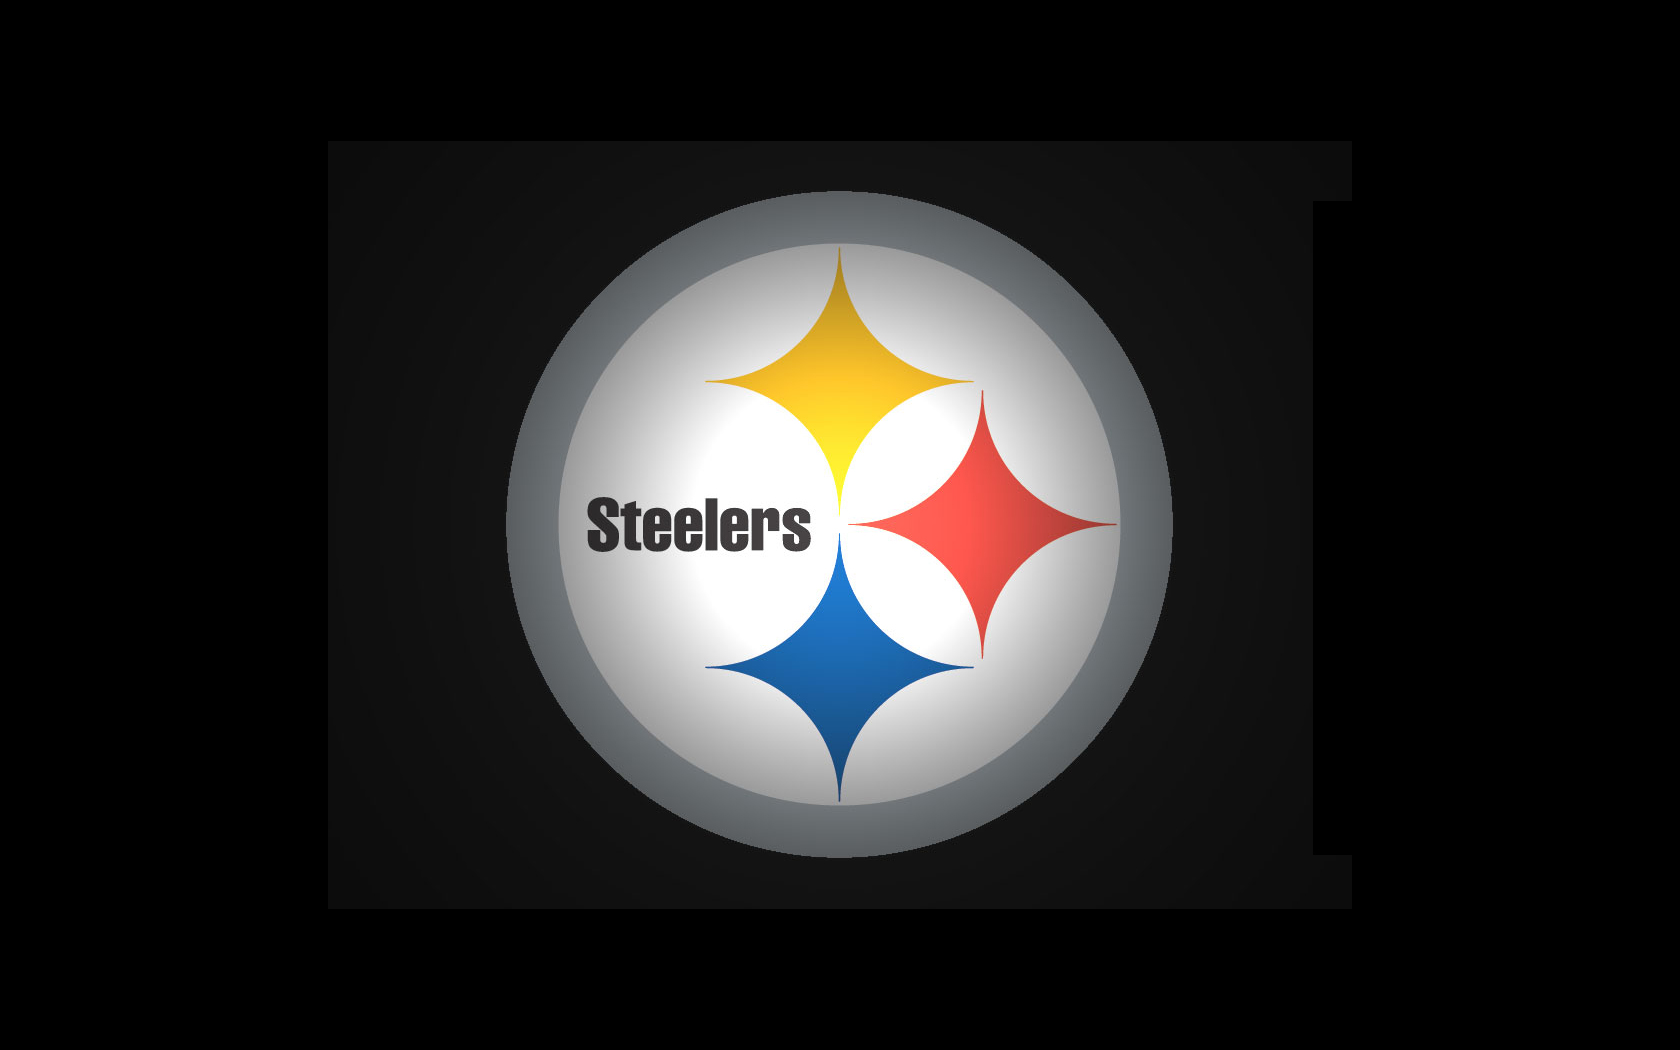 Images pittsburgh steelers wallpaper page 4 1680x1050